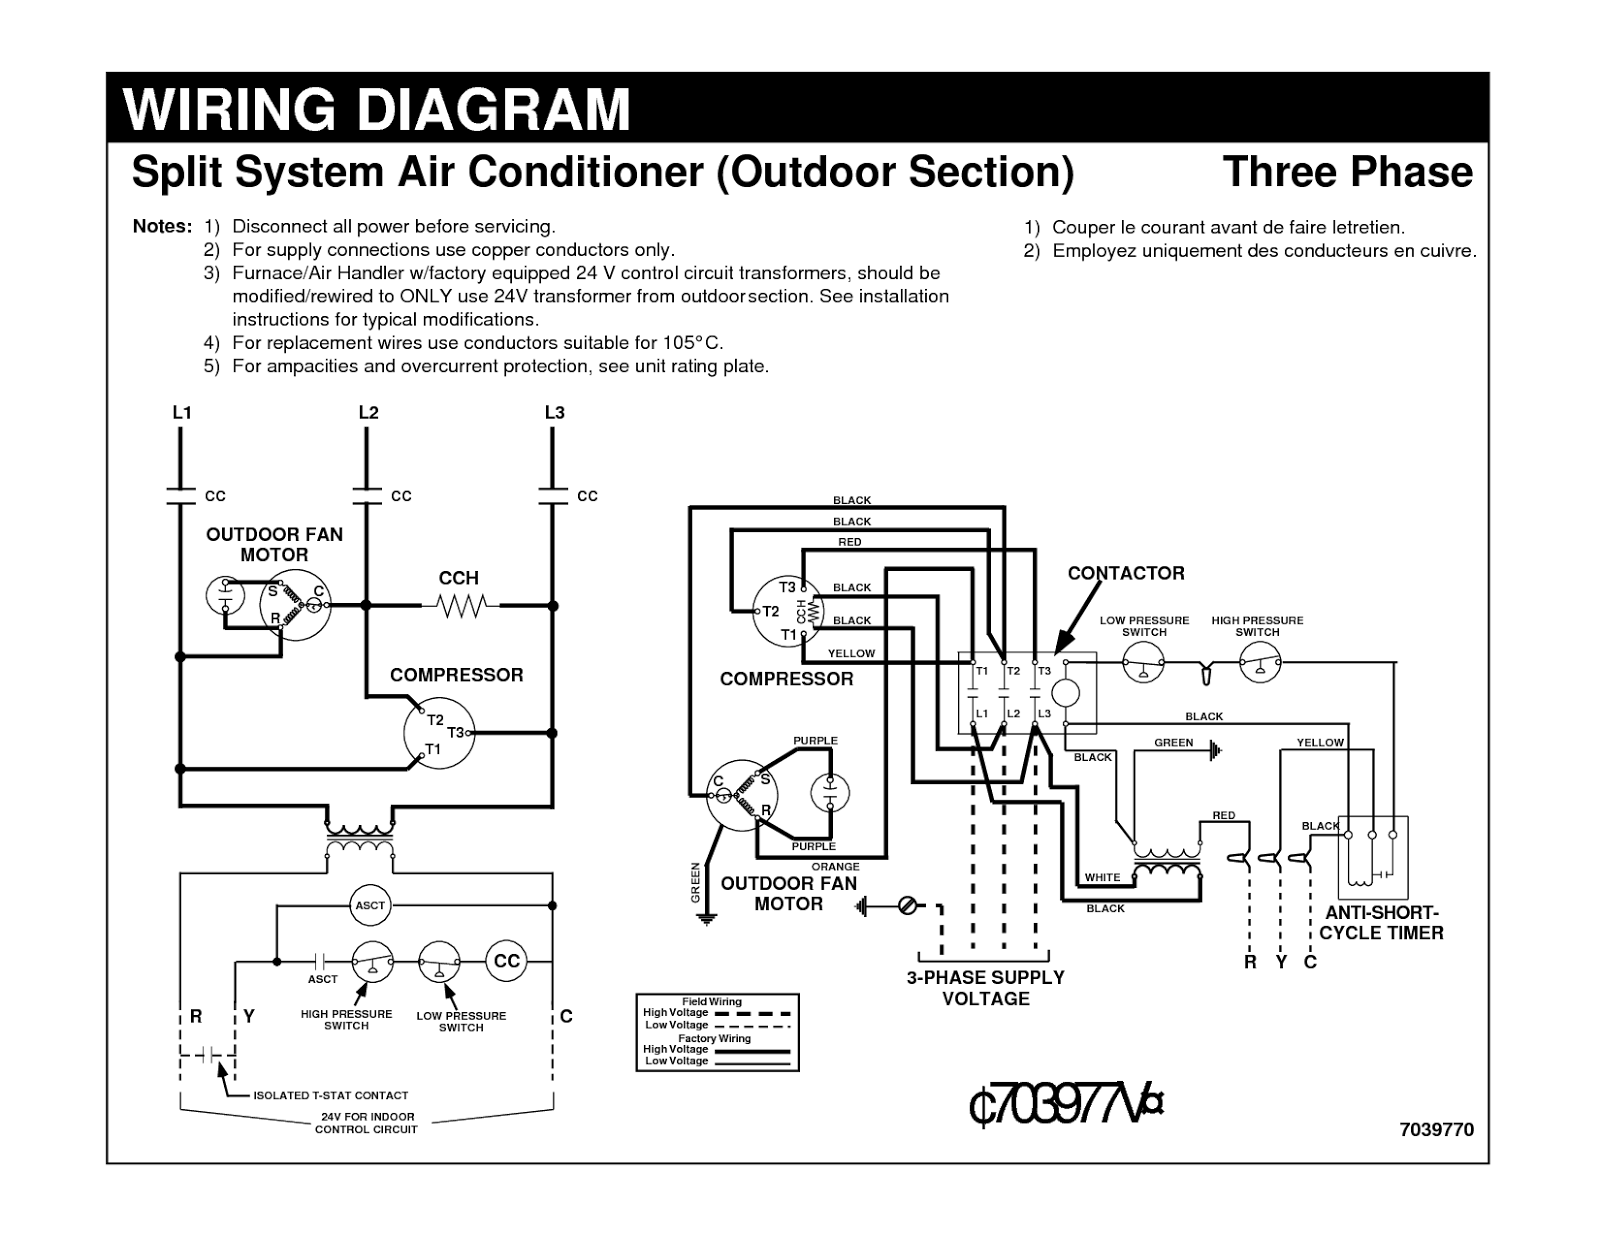 electrical wiring diagrams for air conditioning systems part one rh electrical knowhow com wiring diagram air conditioner wiring diagram lg air conditioner